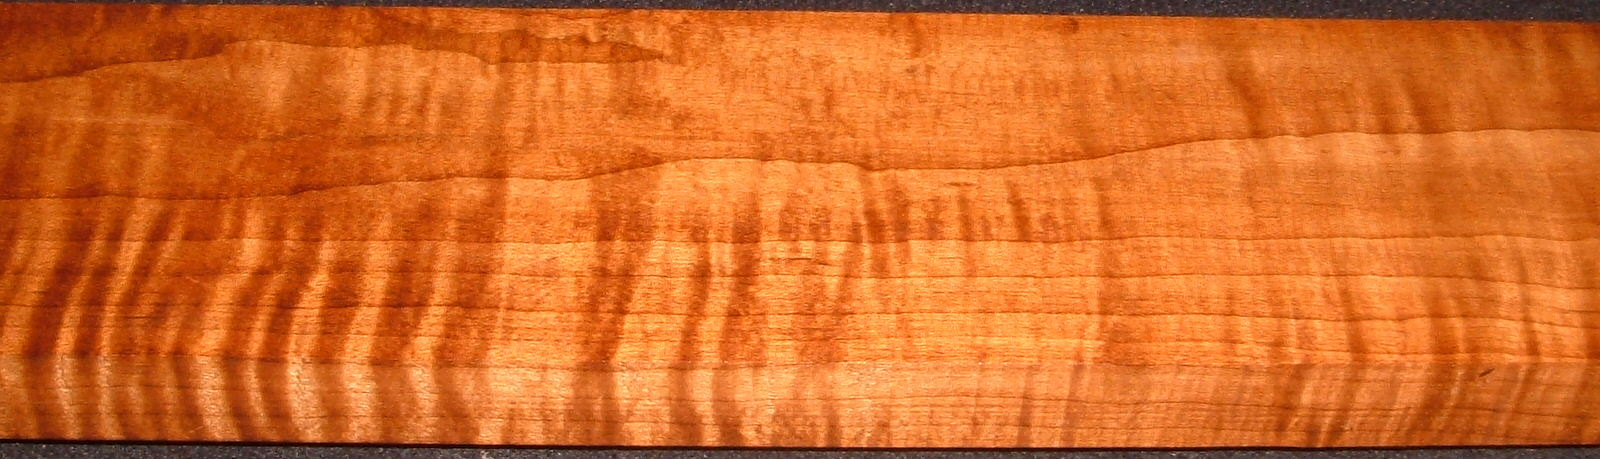 RHM2010-323,  1-1/16x4x45, Roasted Torrefied Curly, Tiger Maple, Roasted Hard Maple